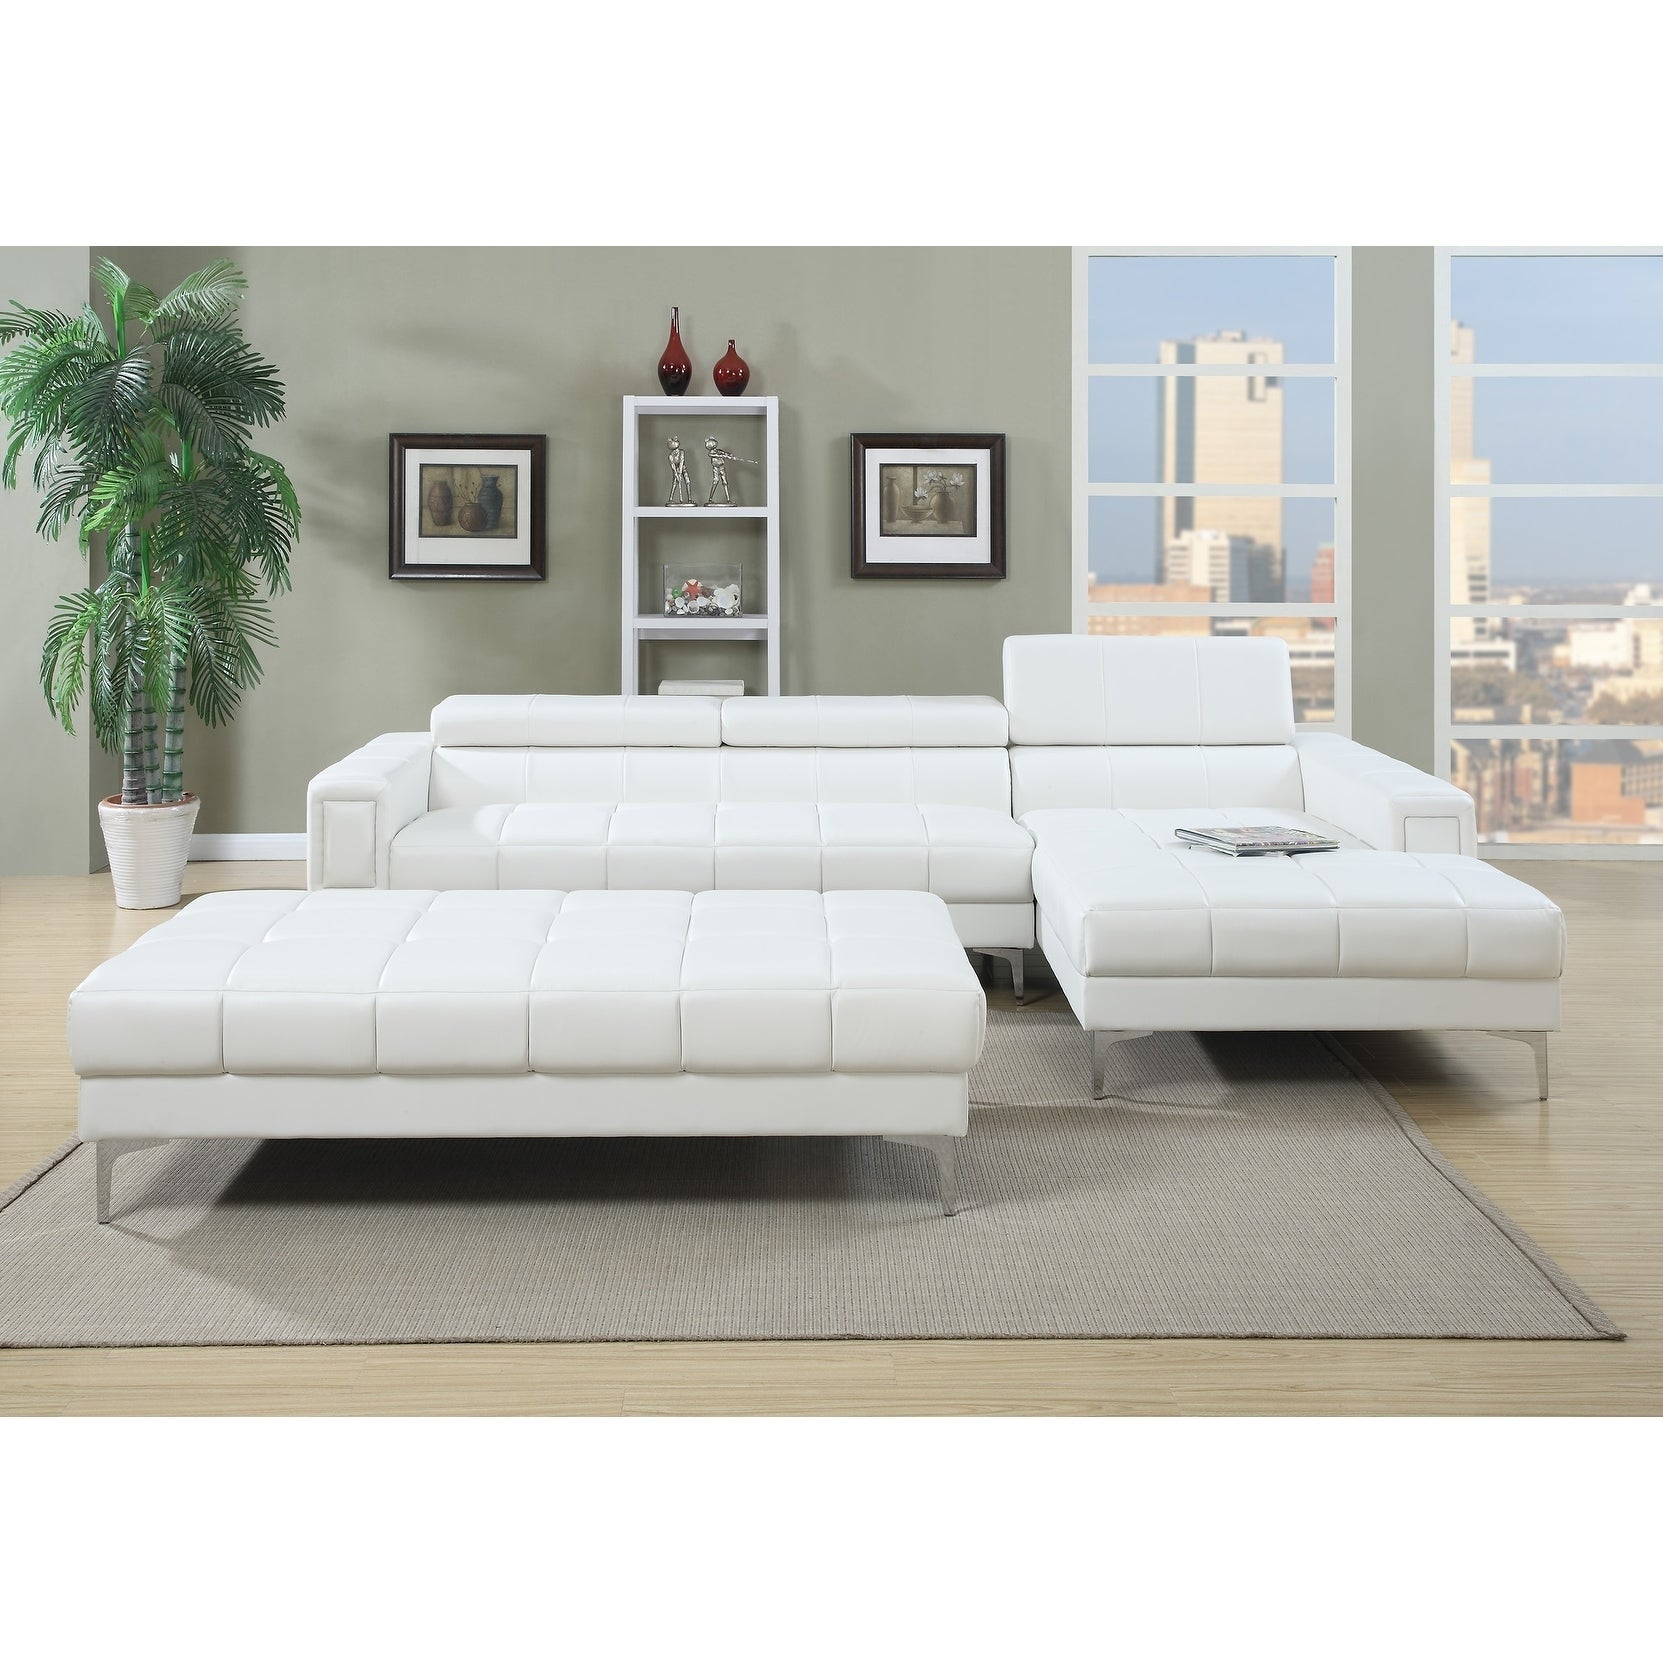 Bobkona Hayden Bonded Leather 2 Pcs Sectional Sofa Loveseat With Adjule Back Ottoman Not Included